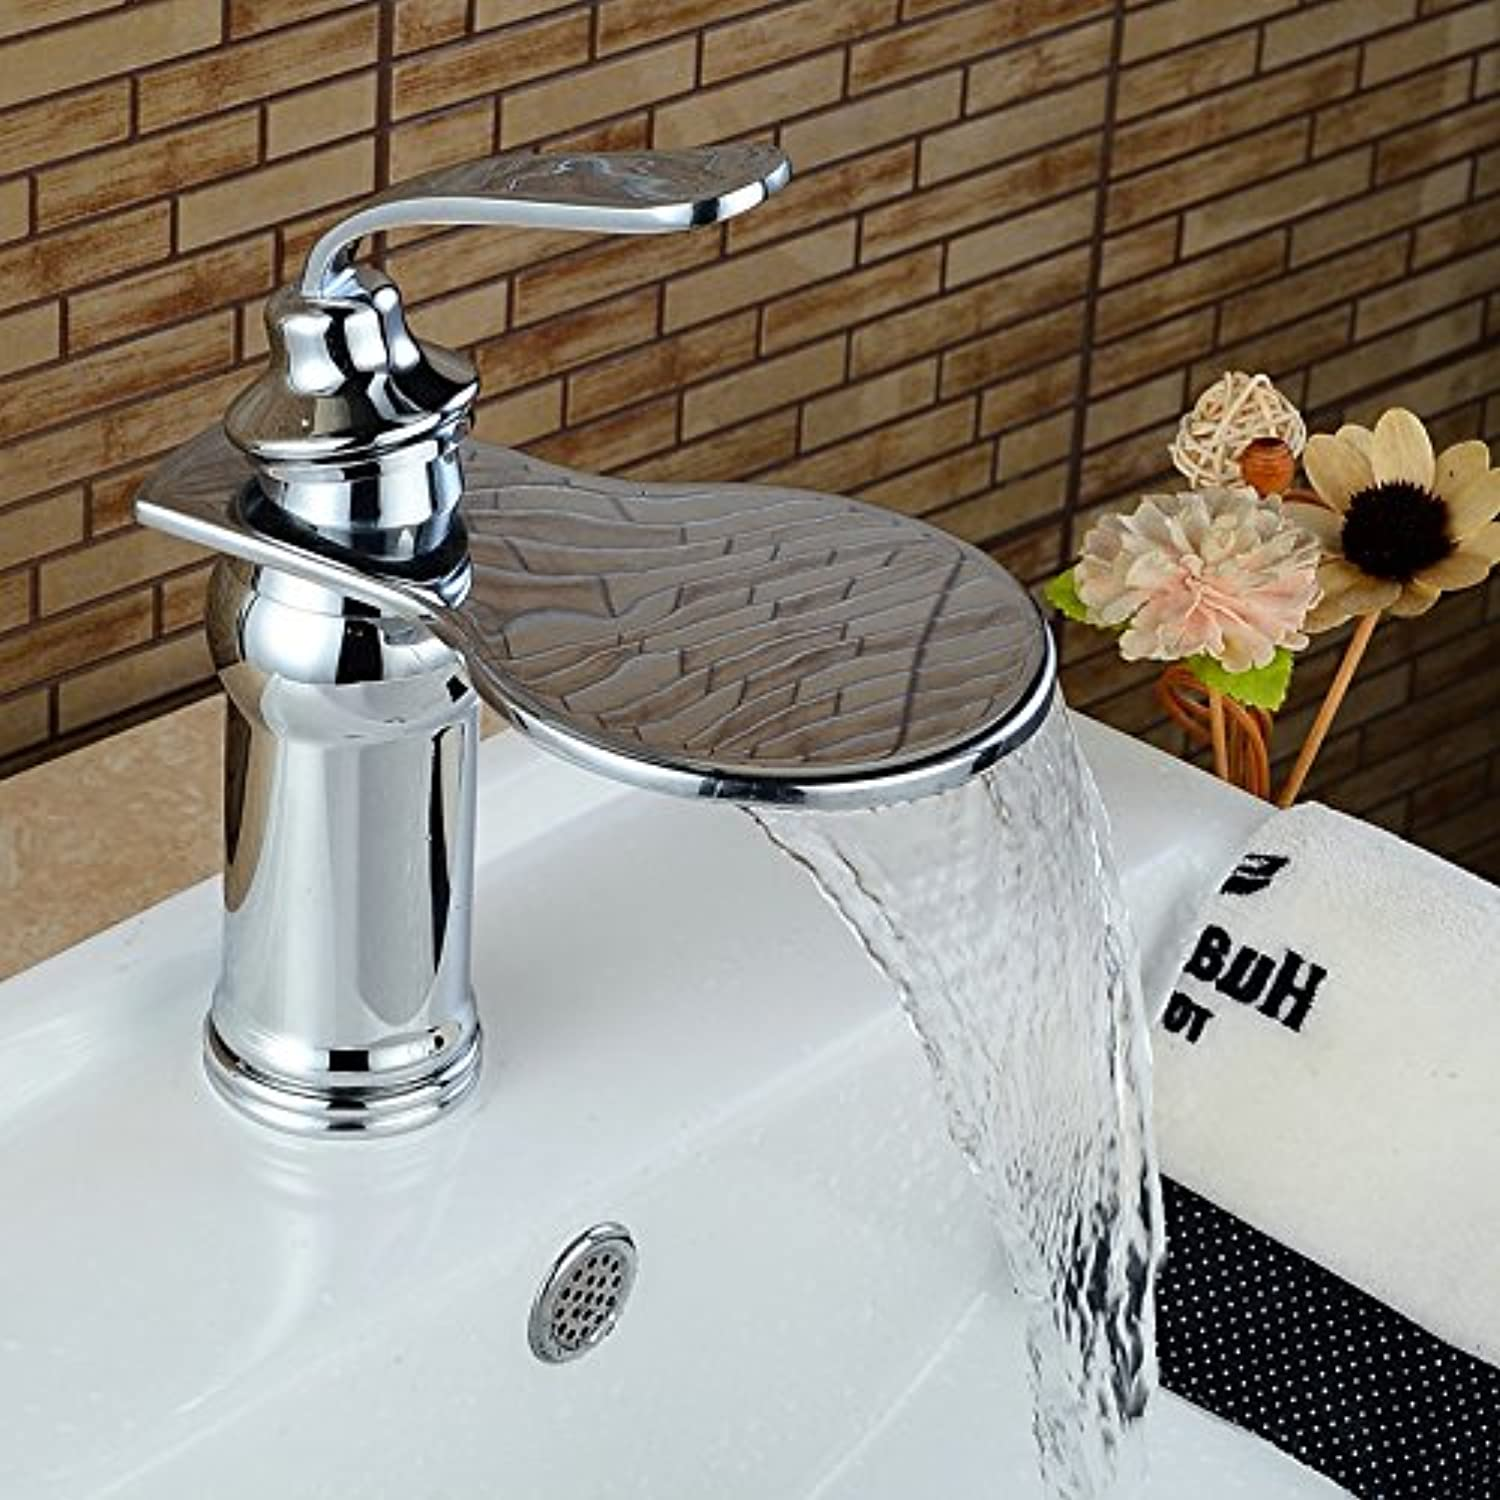 Retro Deluxe Fauceting Big Waterfall Basin Faucets Bathroom Basin Sink Brass Mixer Tap Hot Cold Chrome Polished Faucet Waterfall Mixer Bathroom Faucet,short chrome